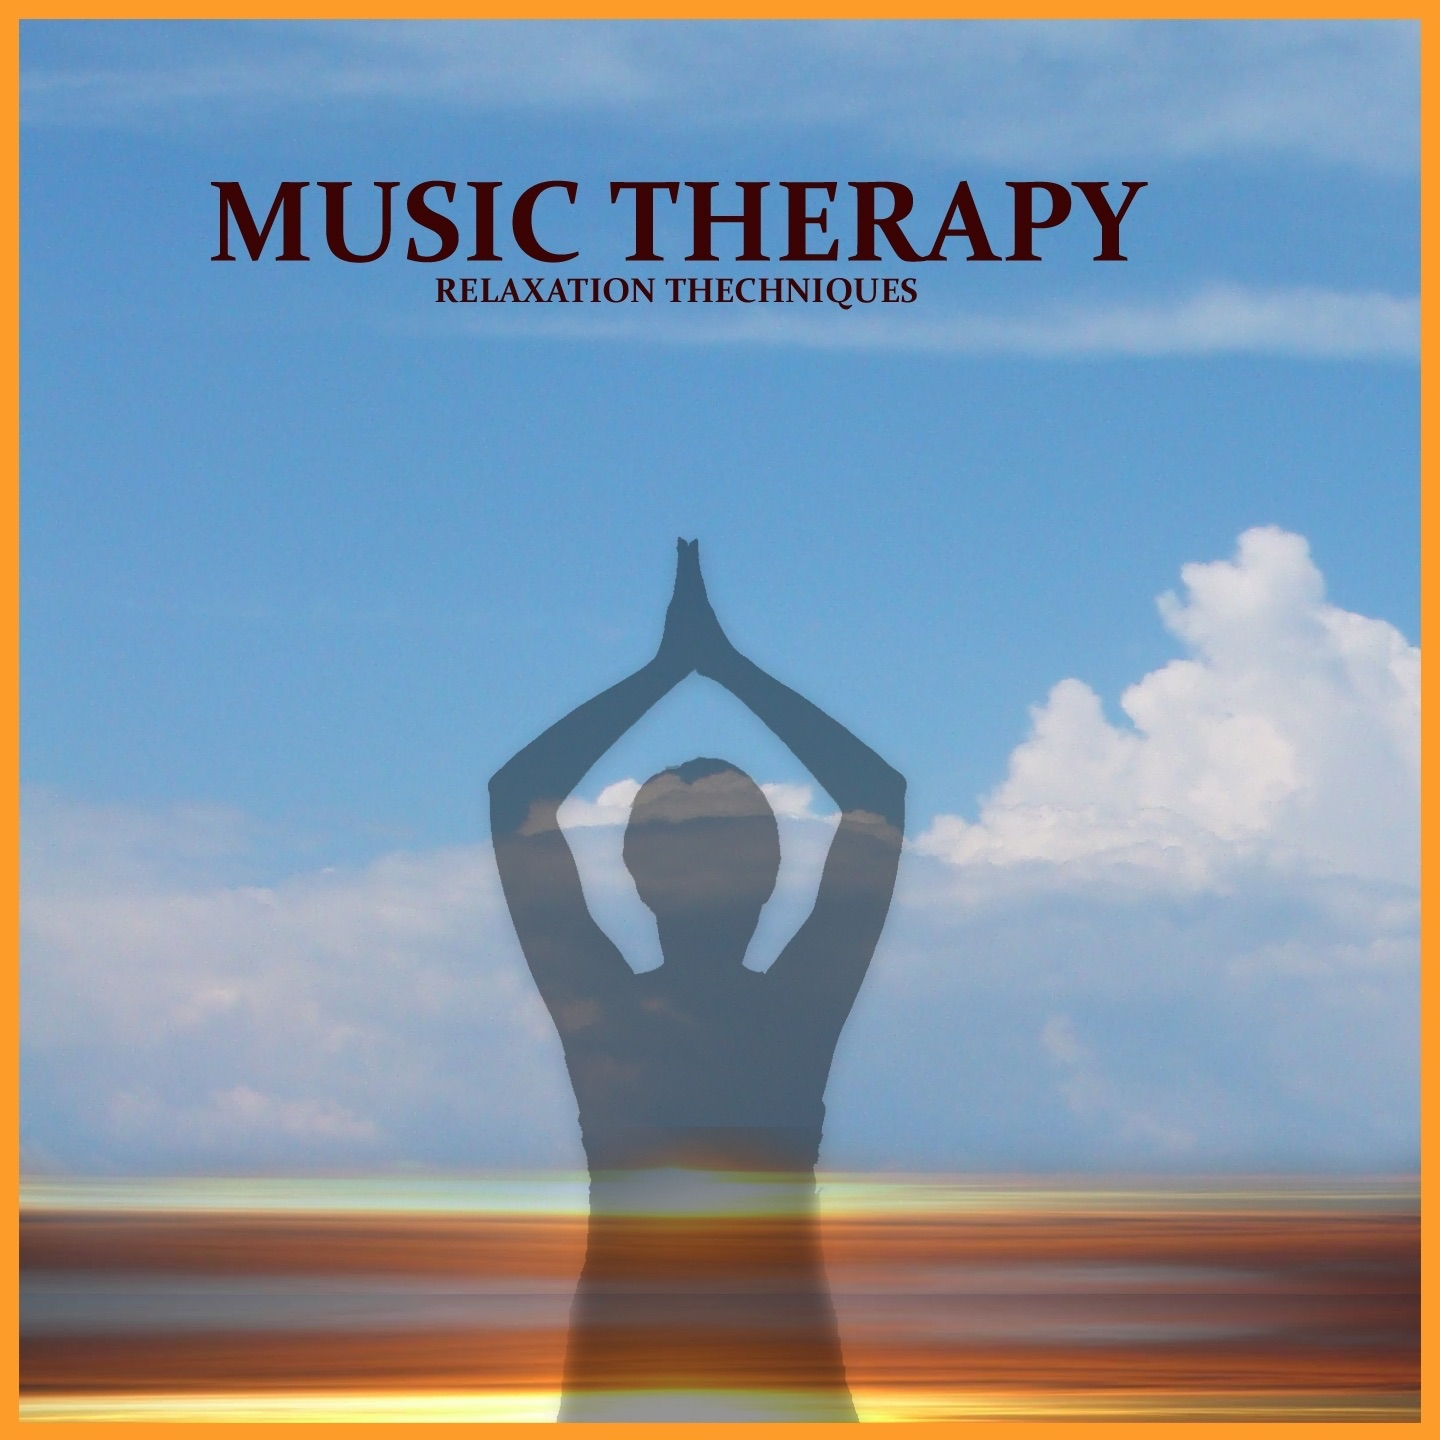 Download Music Therapy Mp3 Songs